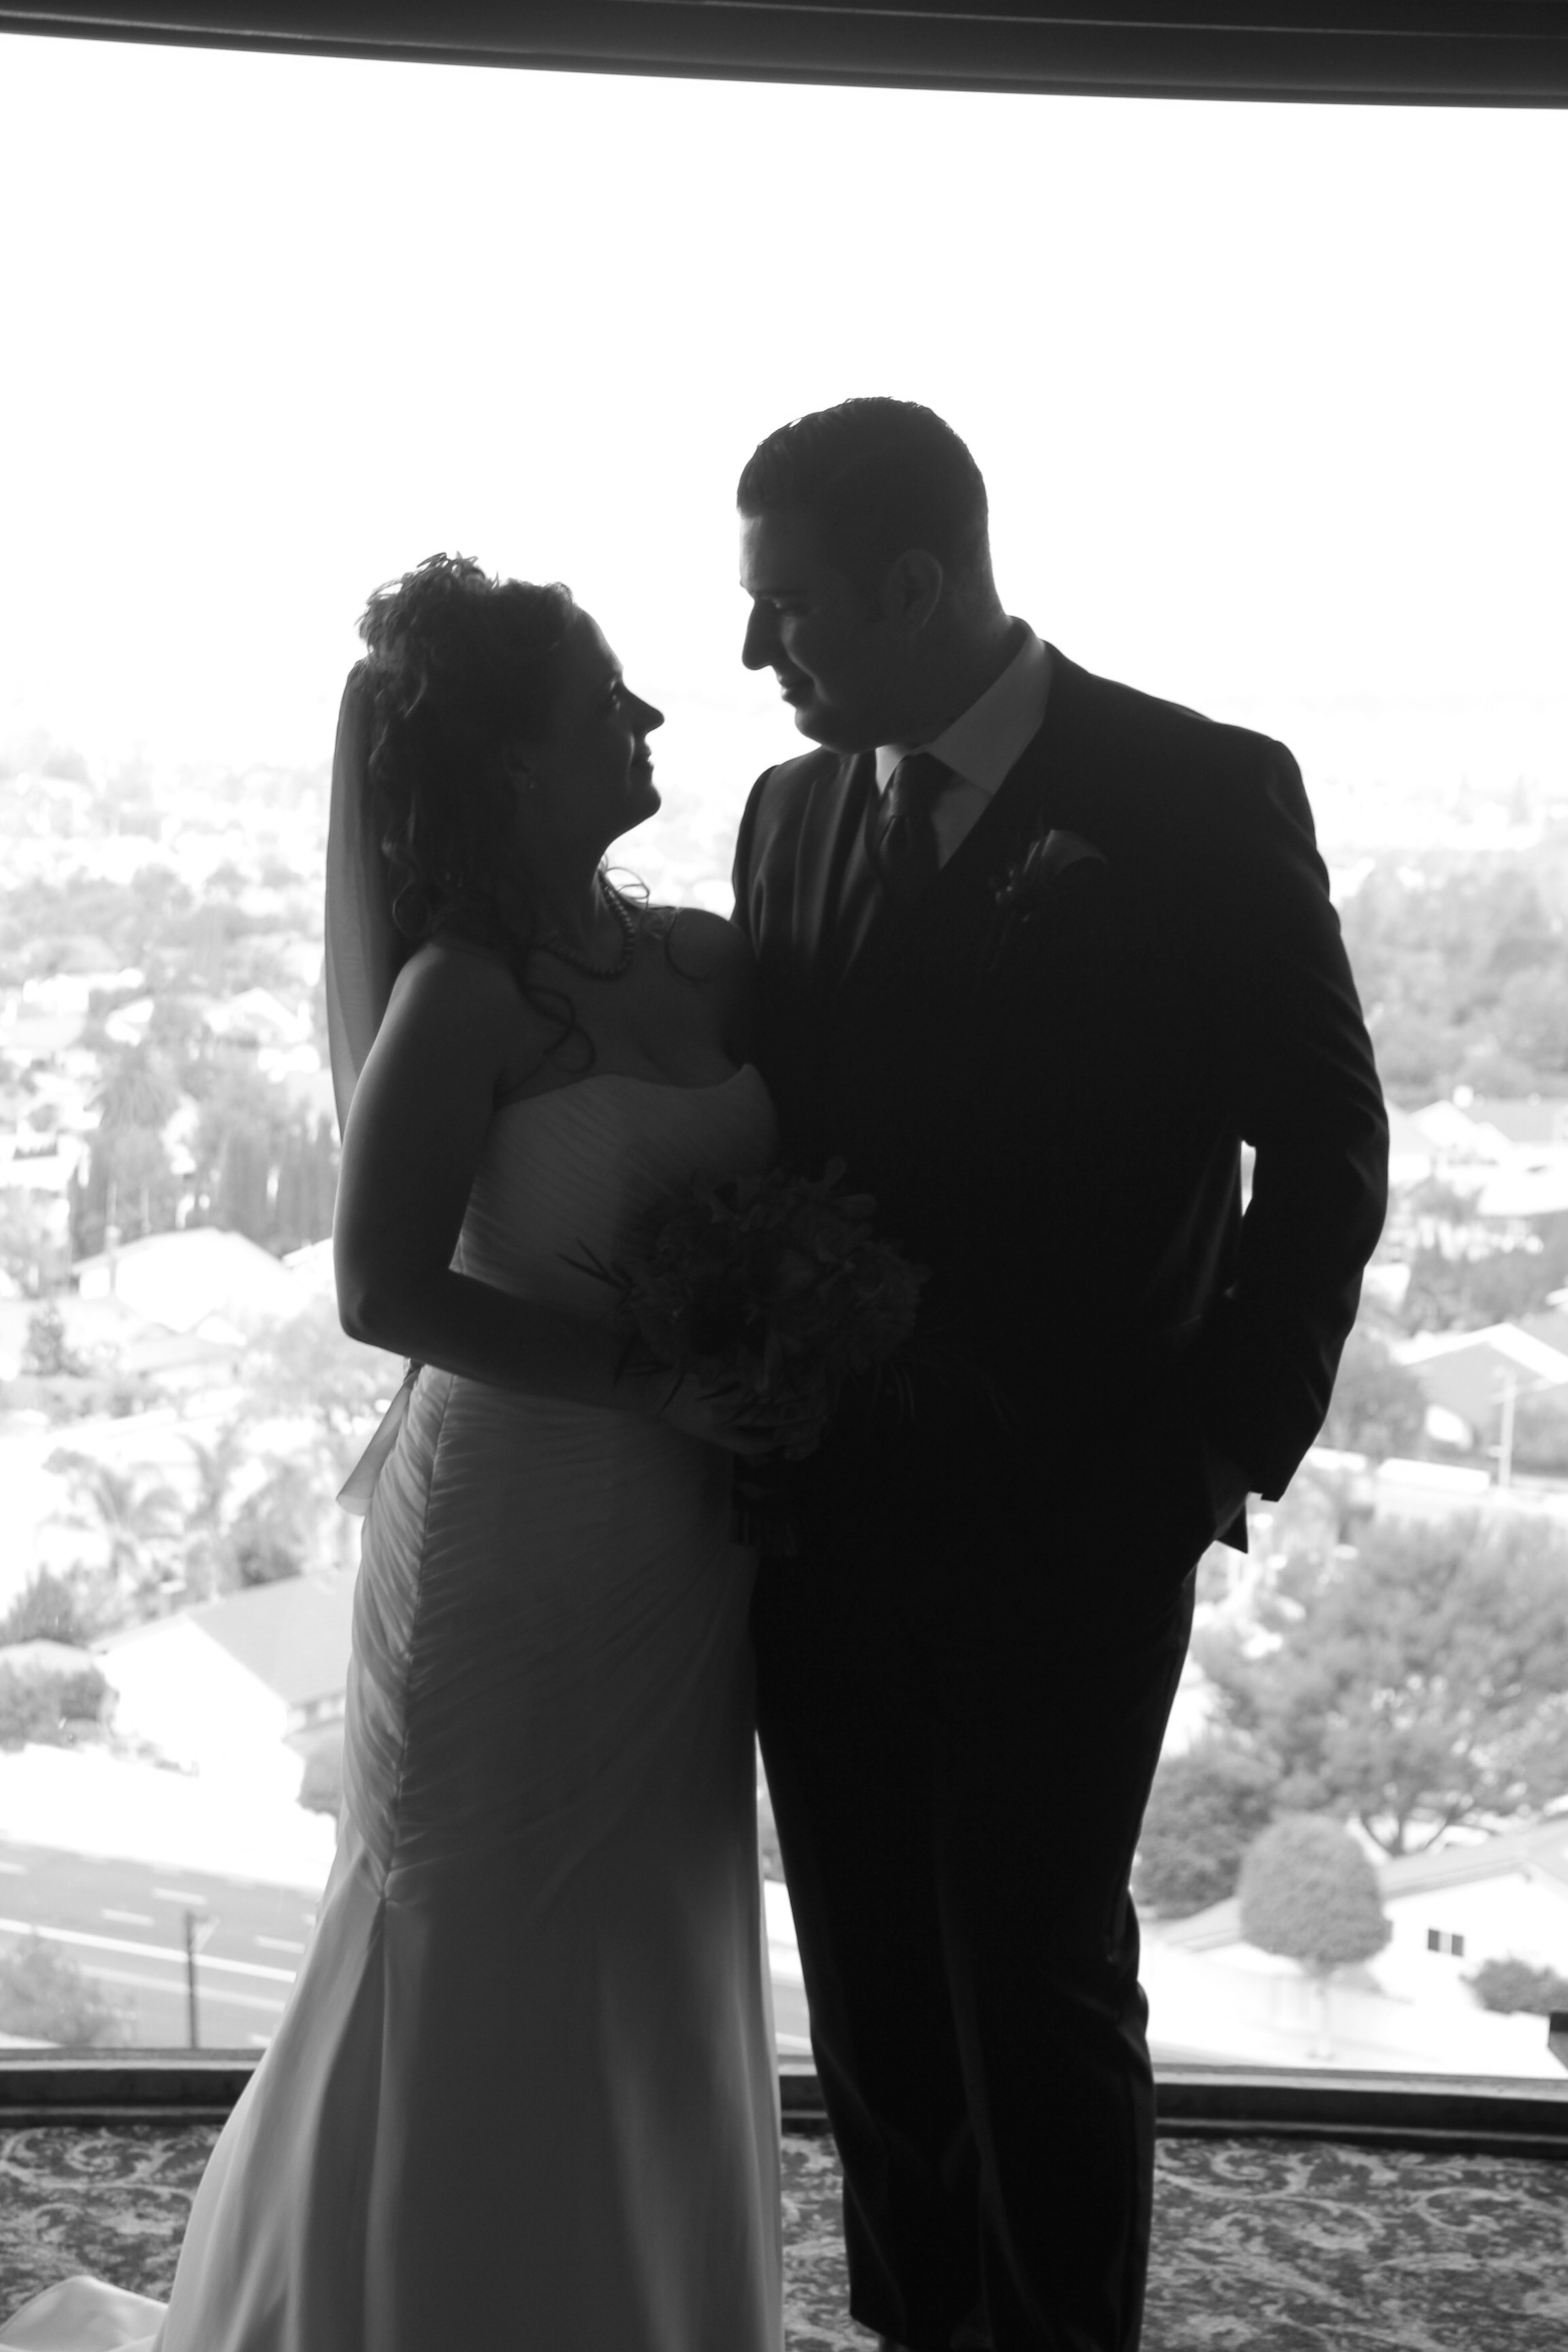 Just Married Silhouettes